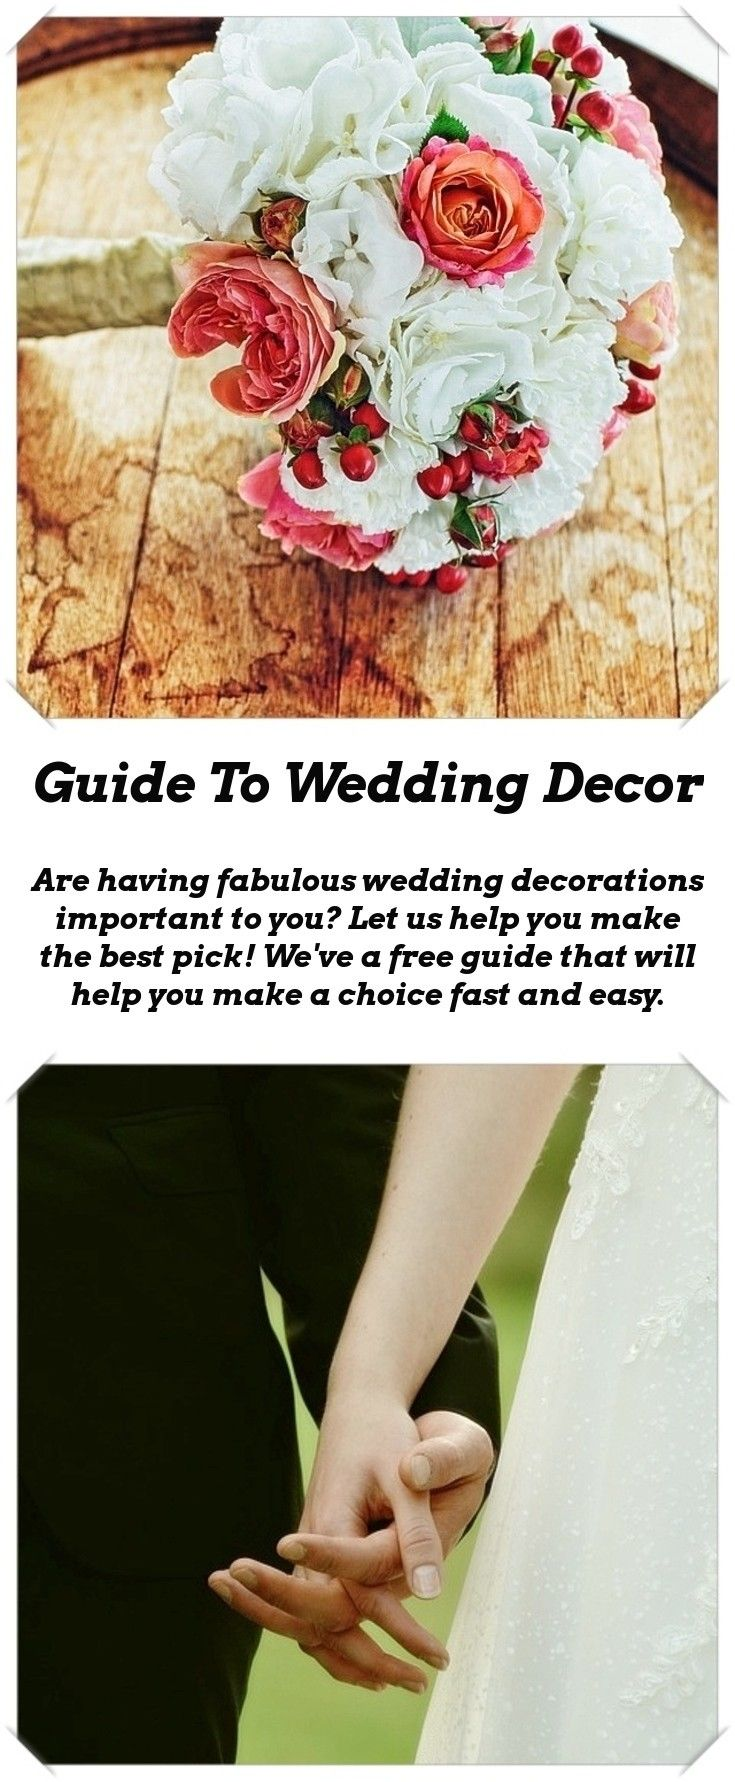 Wedding decorations to make  Decoration Ideas For Your Wedding  Weddings